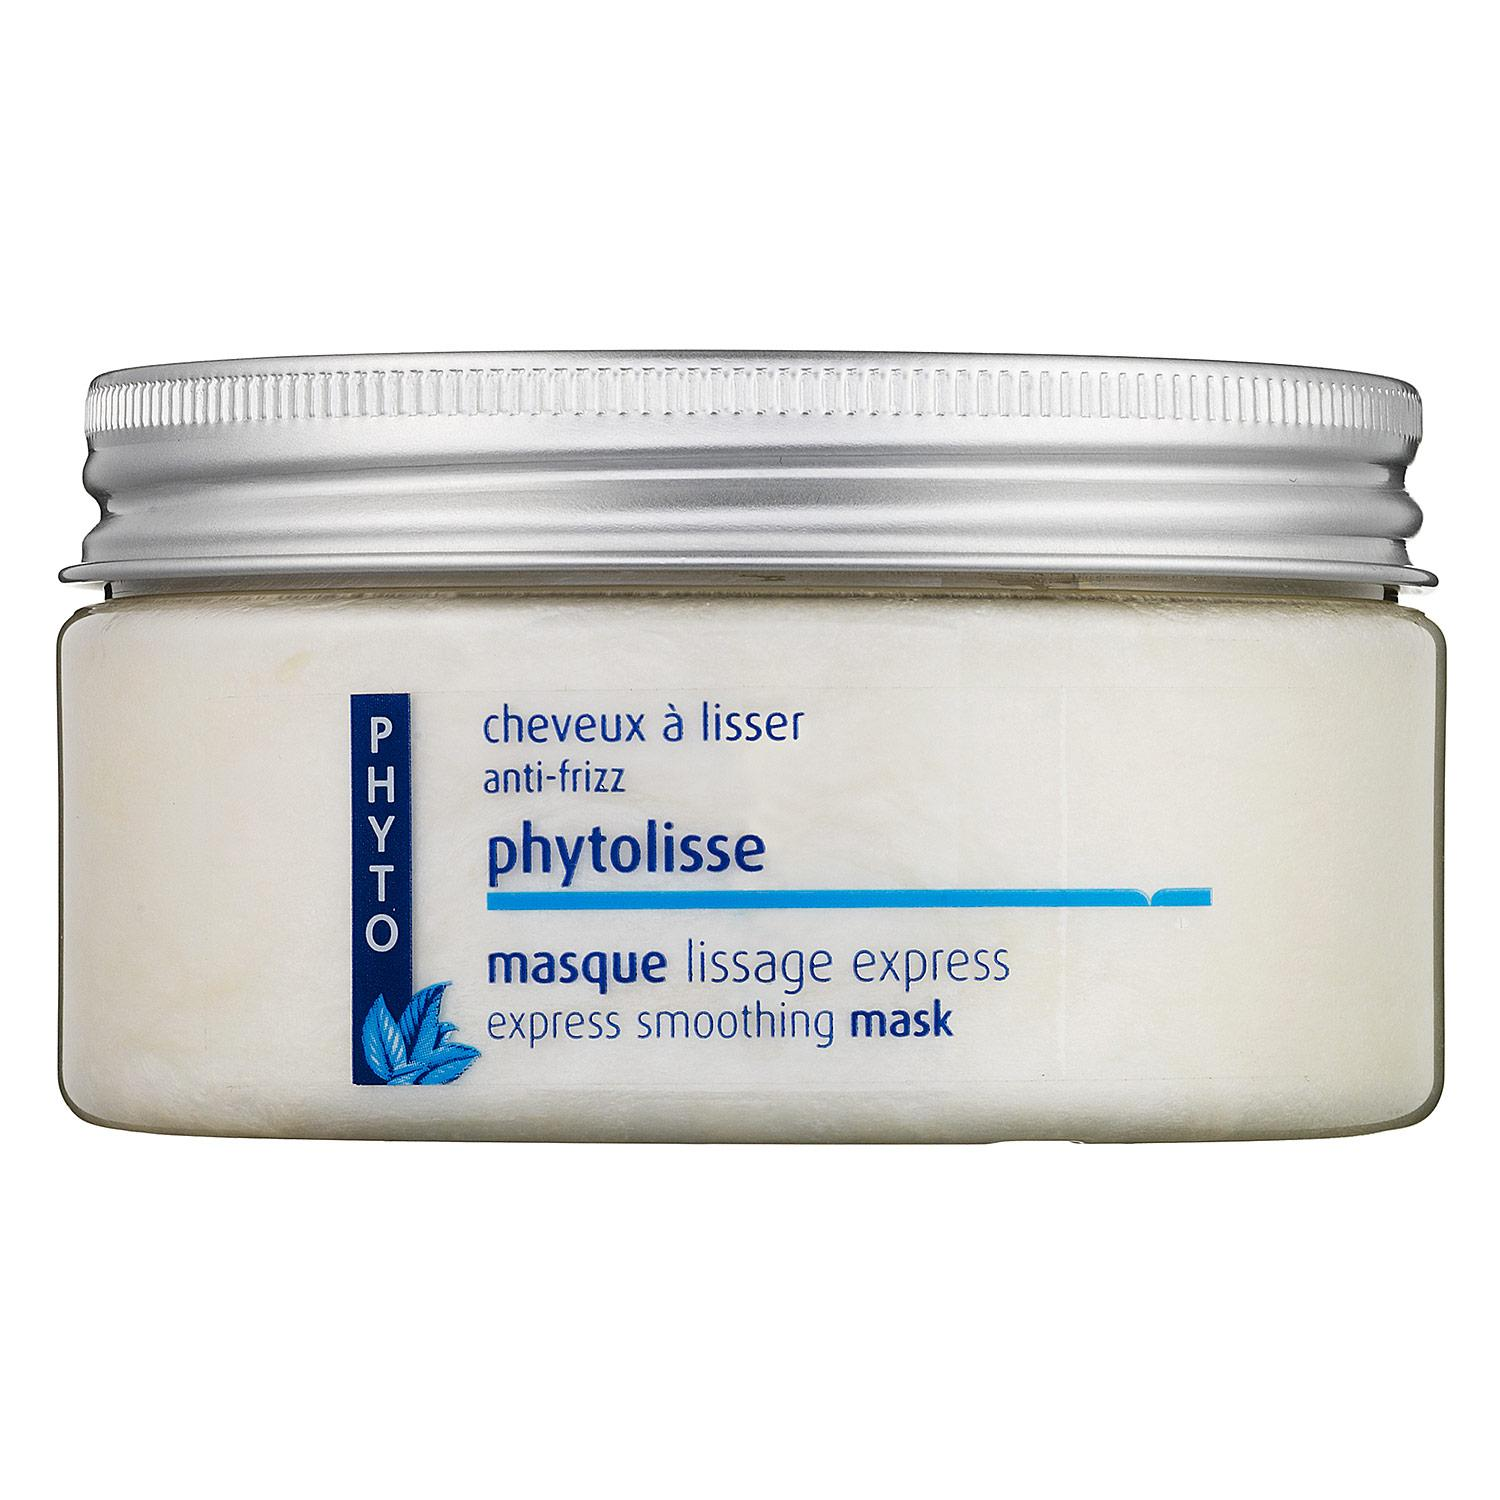 lisse Express Smoothing Mask